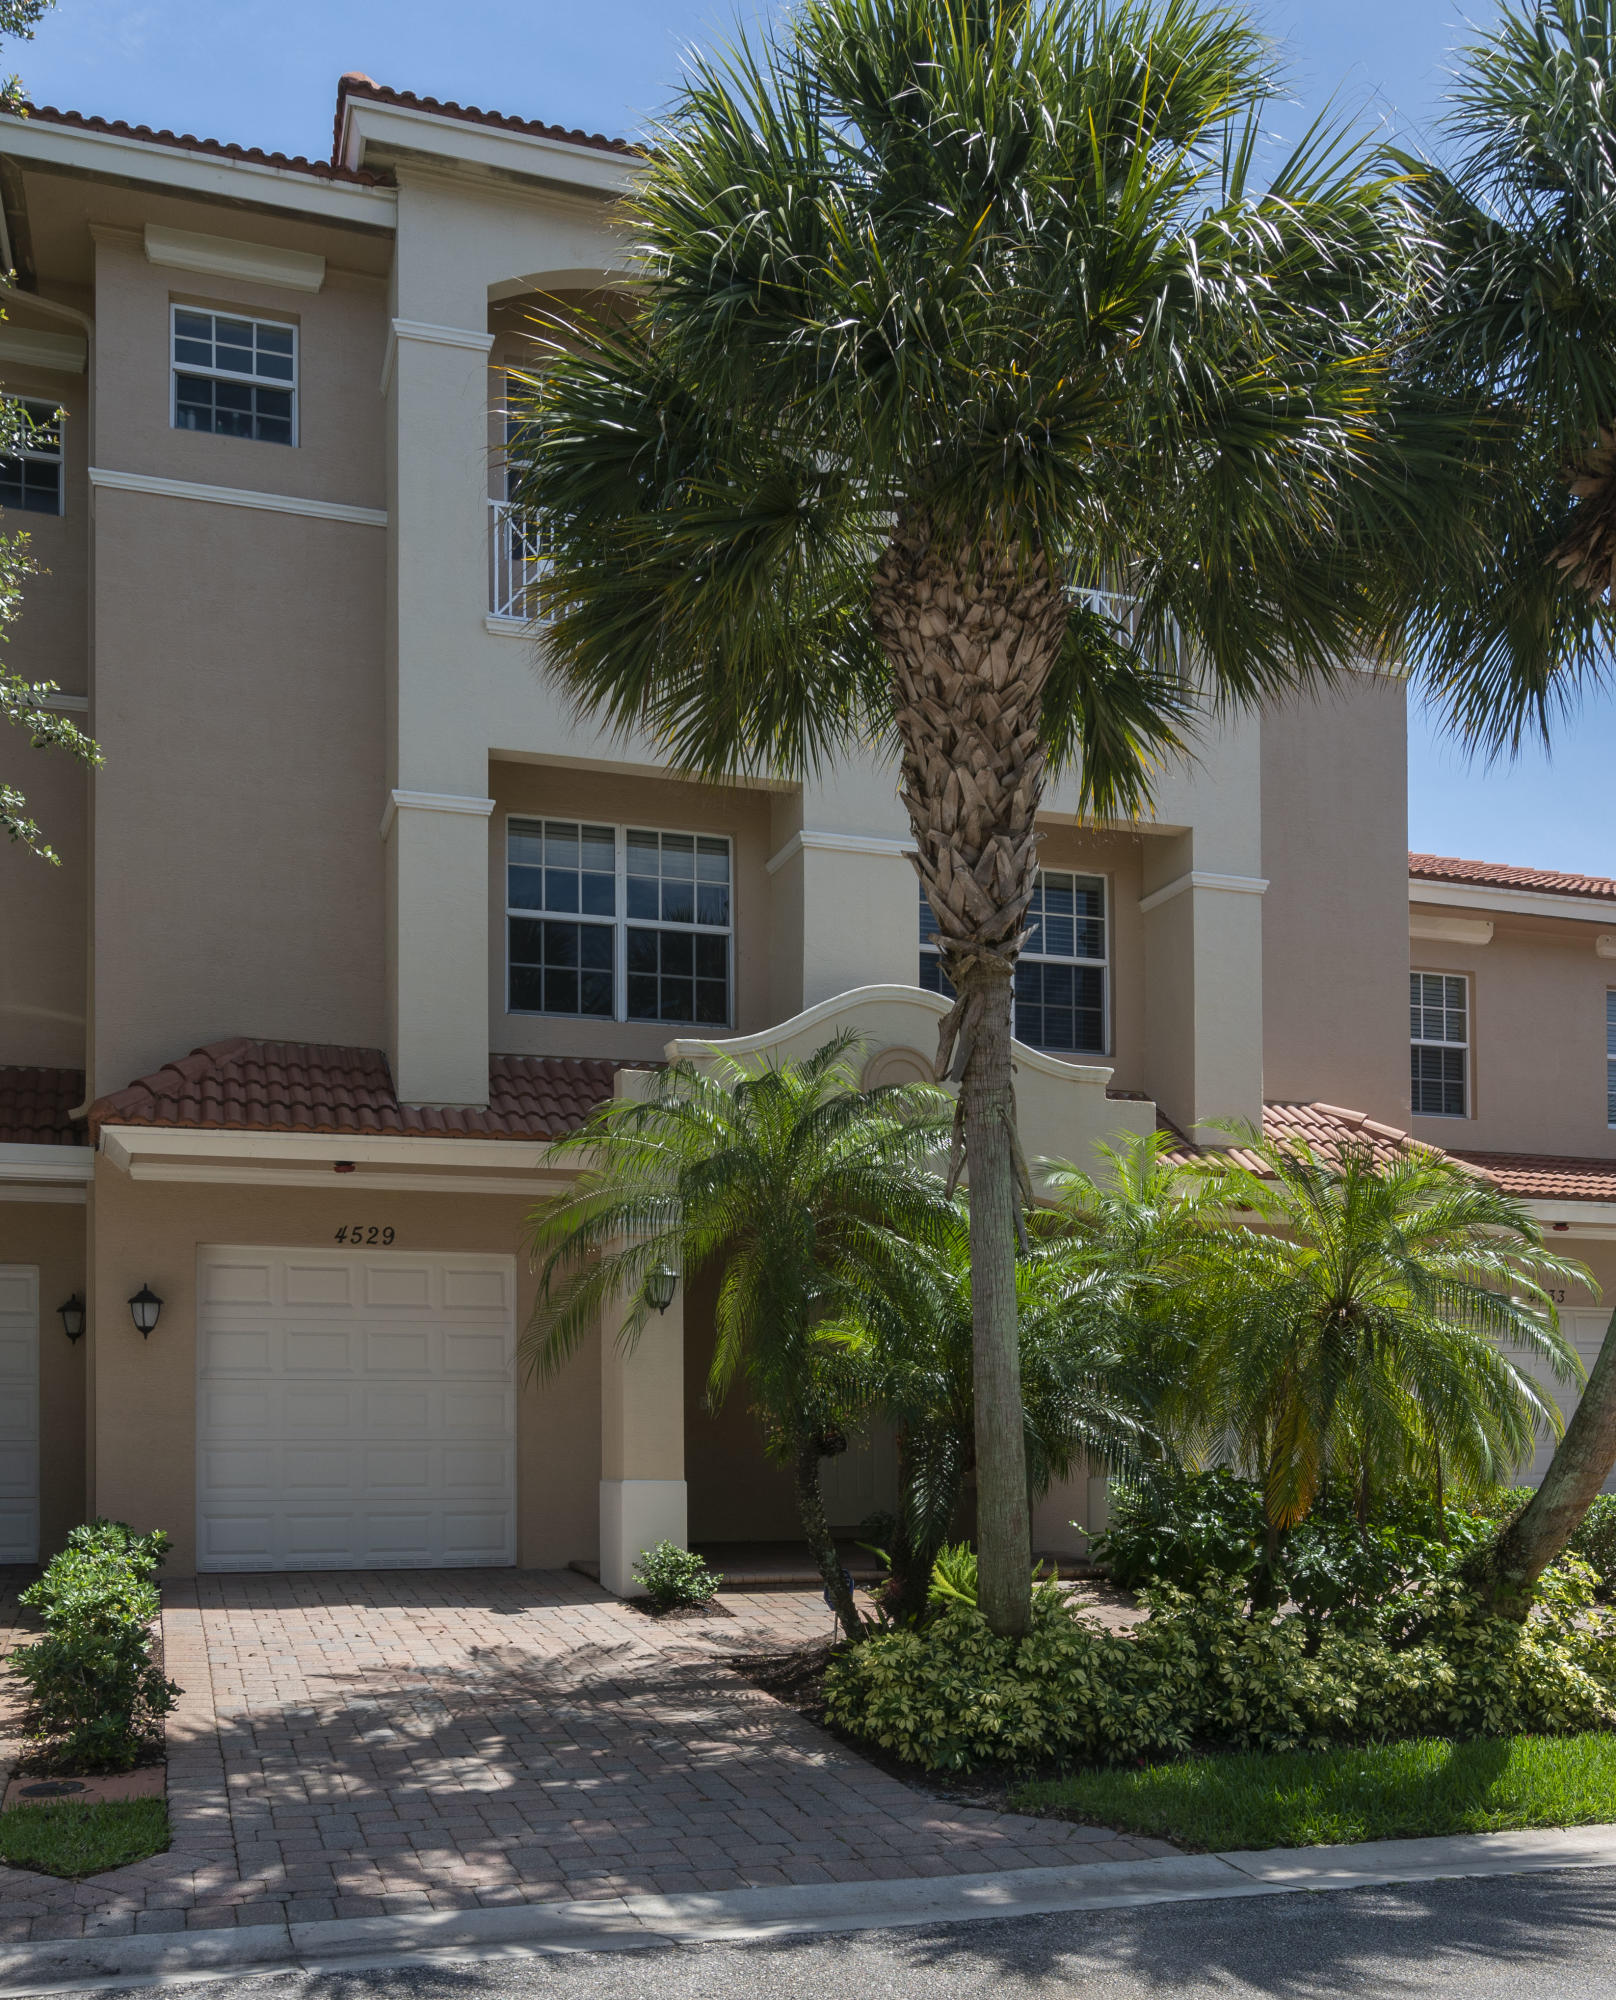 This rental is available January 1, 2022. This is a great townhome in one of the best locations in Palm Beach Gardens/Jupiter. You will love this unit and community! We are also the best priced unit in the community right now. It will  also be managed by a professional real estate company. Owner is the listing agent and licensed real estate broker.